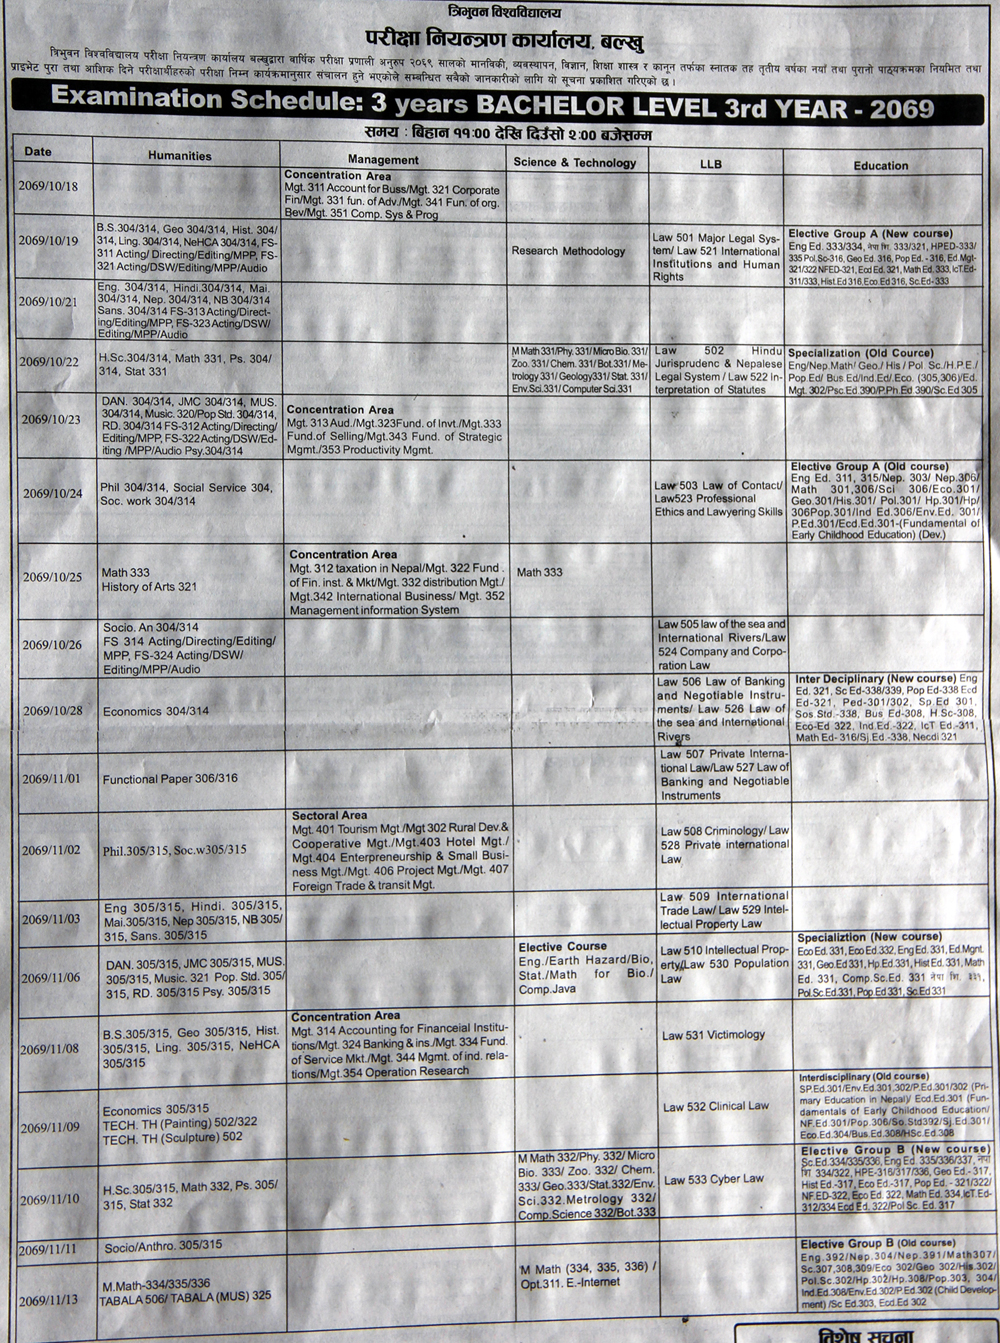 TU Exam Routine Bachelors (BA, BSc, BBS, BEd, LLB) Year 2069 (2012